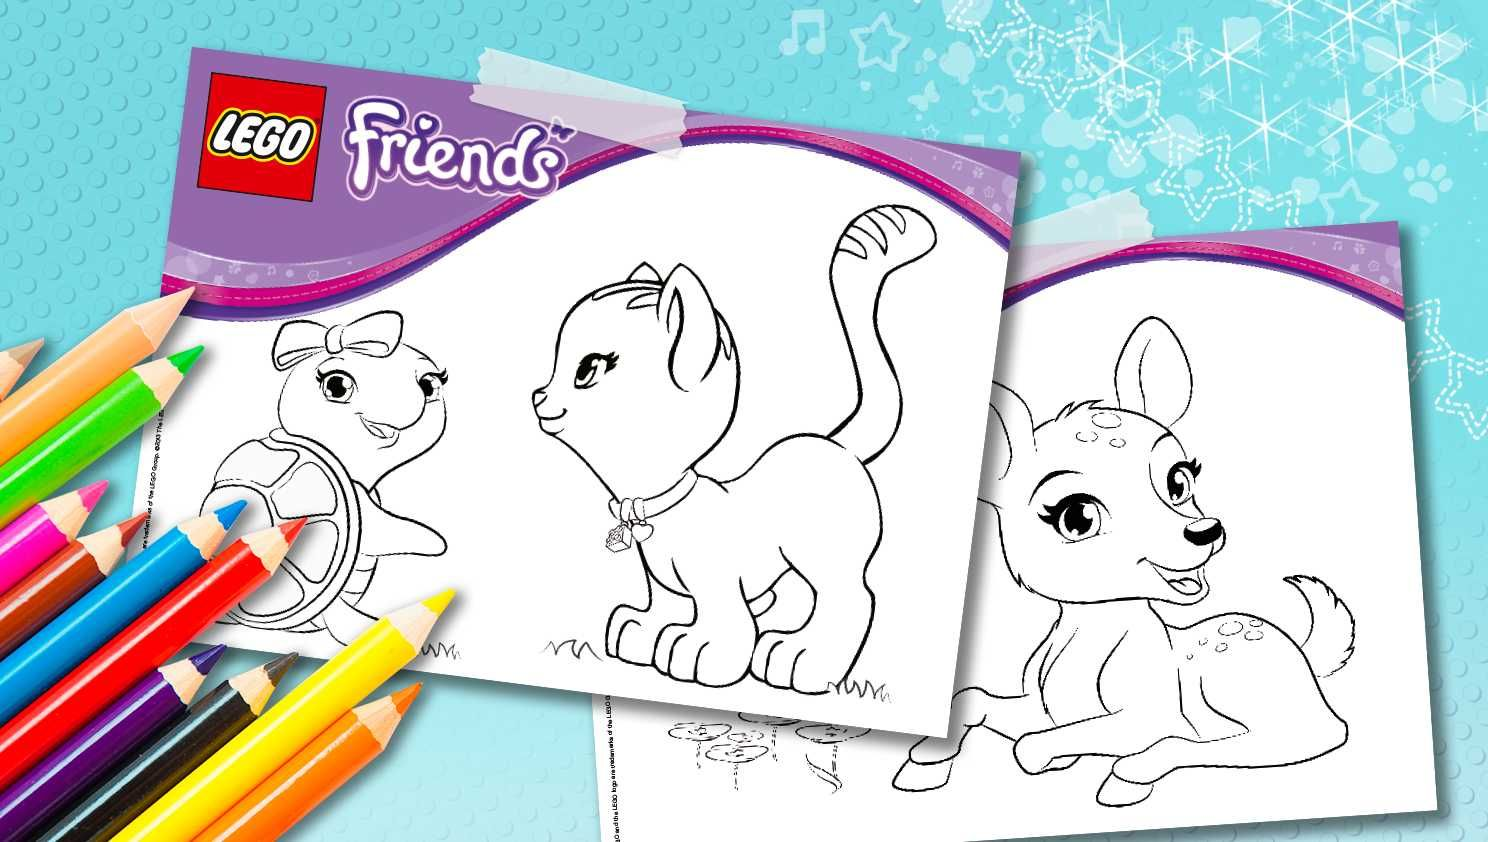 Download Cute Animal Coloring Sheets Downloads Activities Lego Friends Lego Com Lego Friends Party Lego Friends Lego Friends Birthday